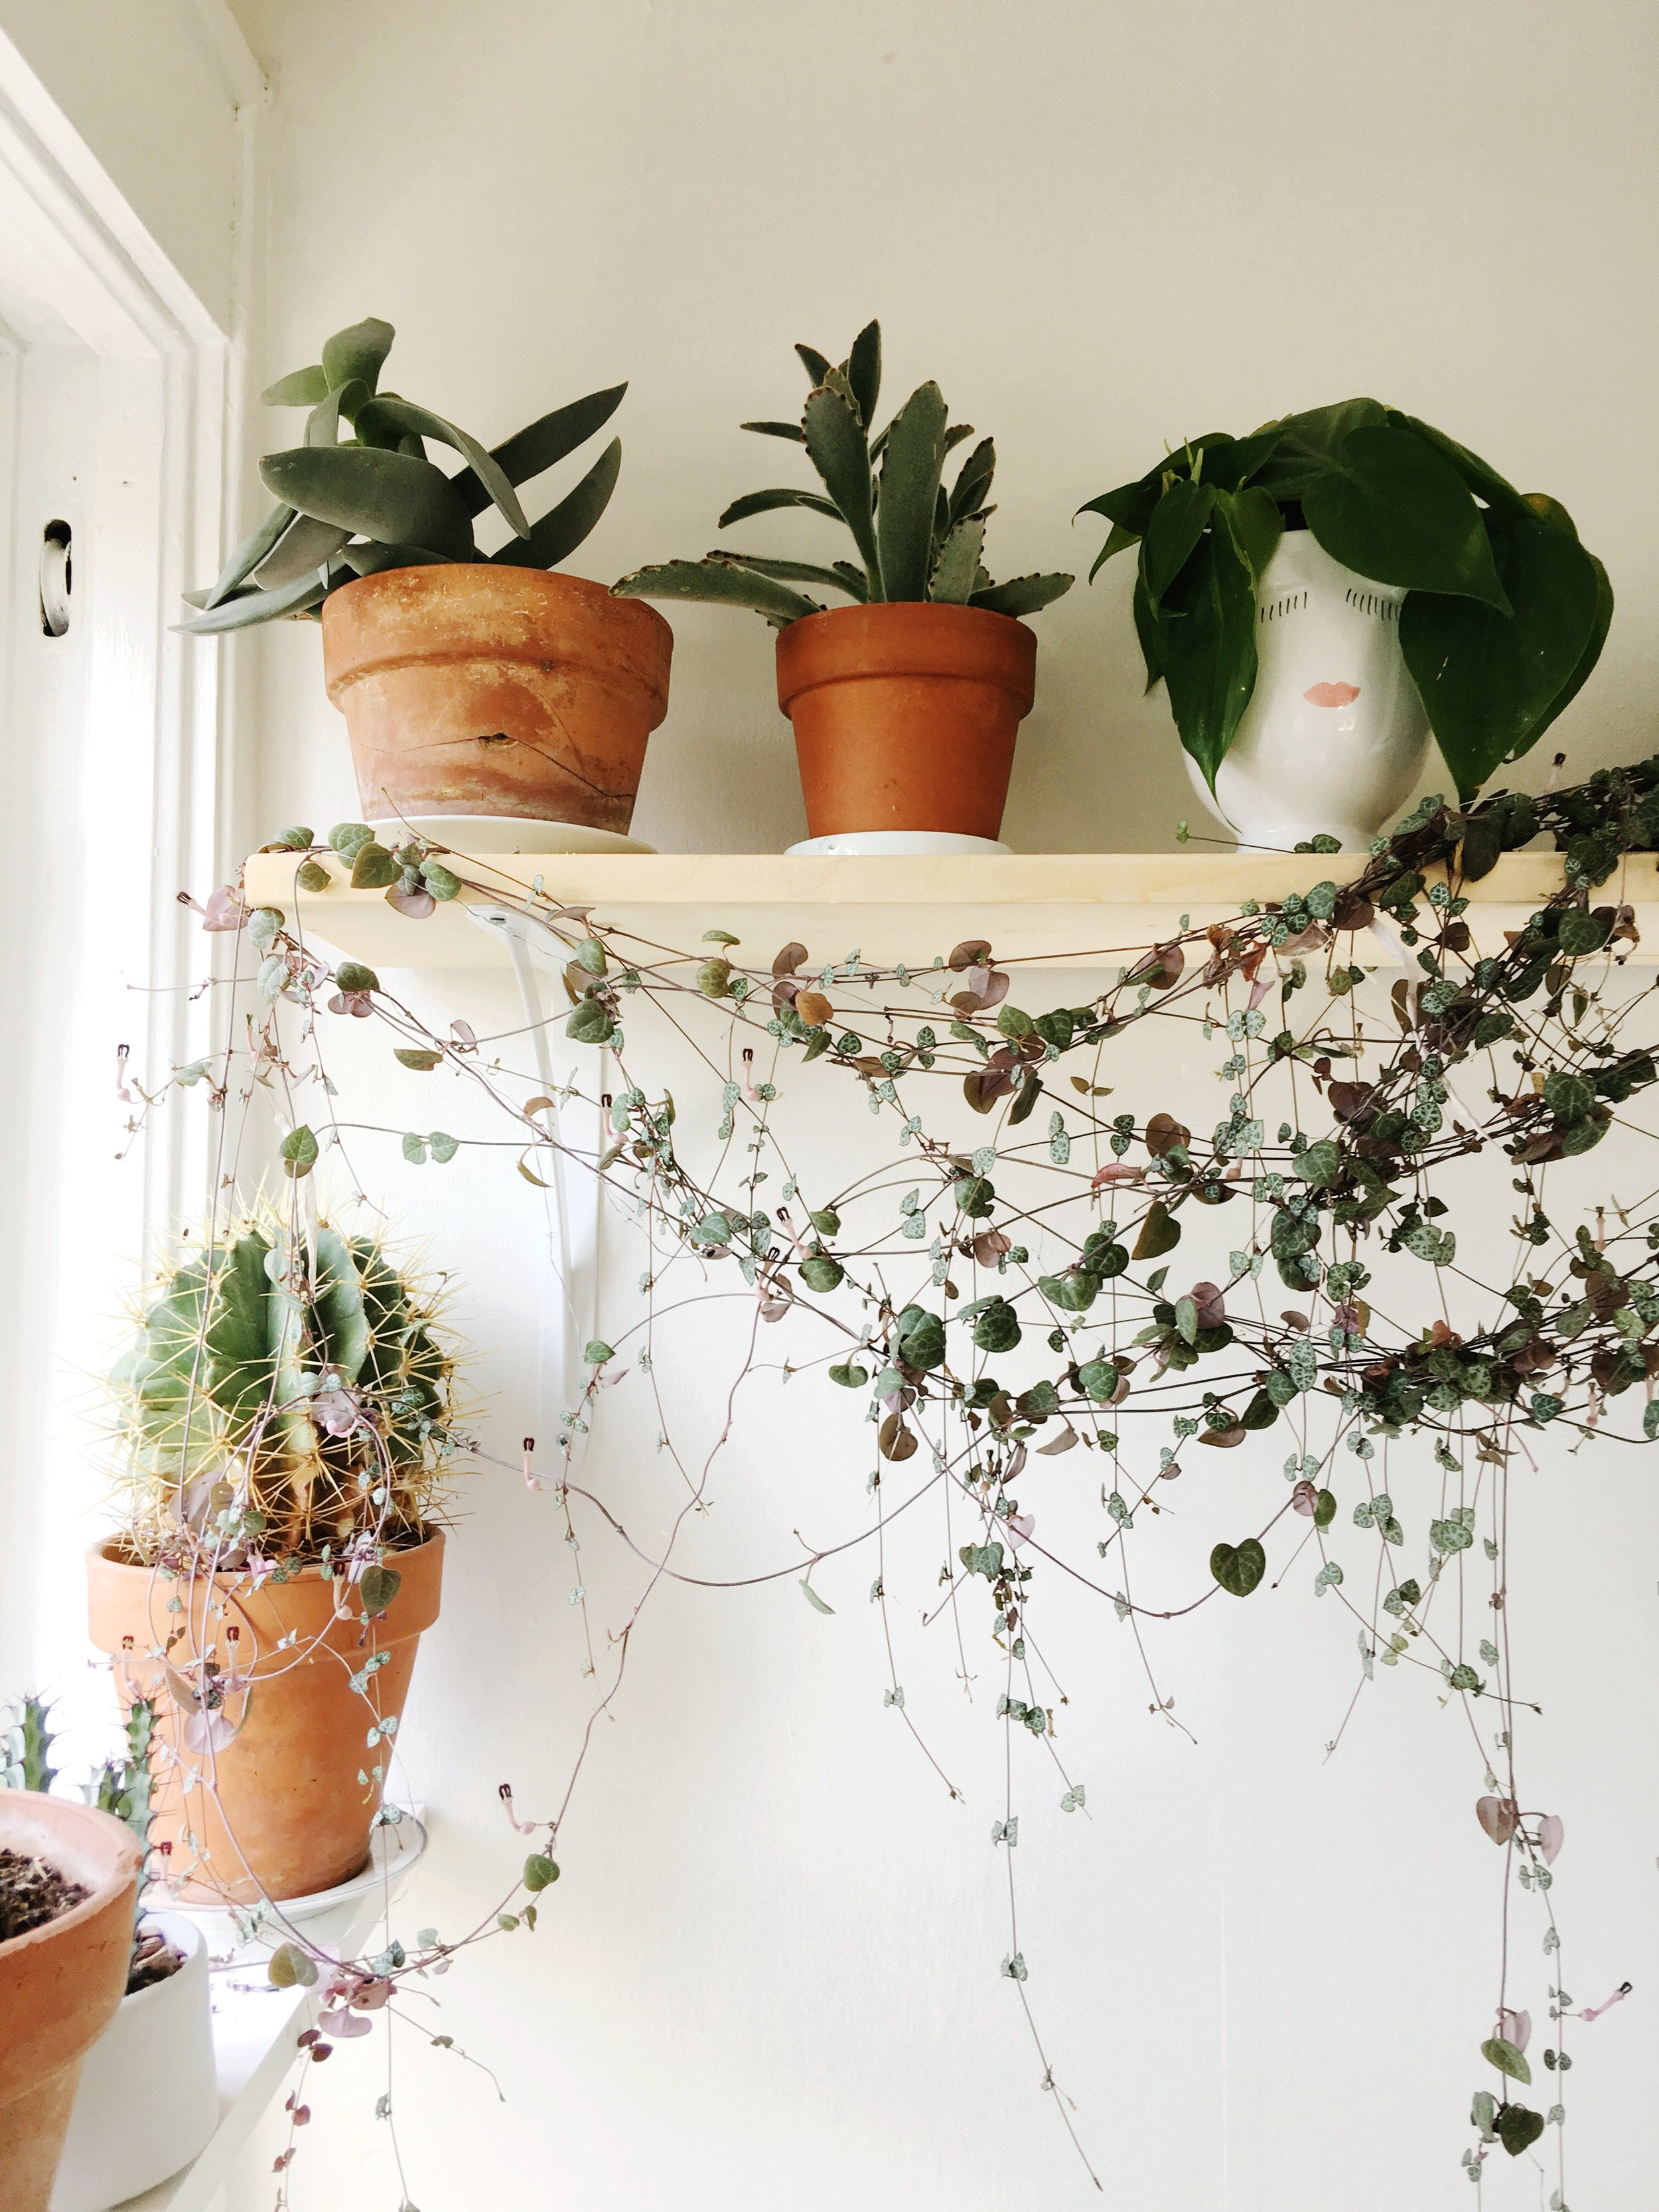 The first plant shelf we ever saw. Memories…